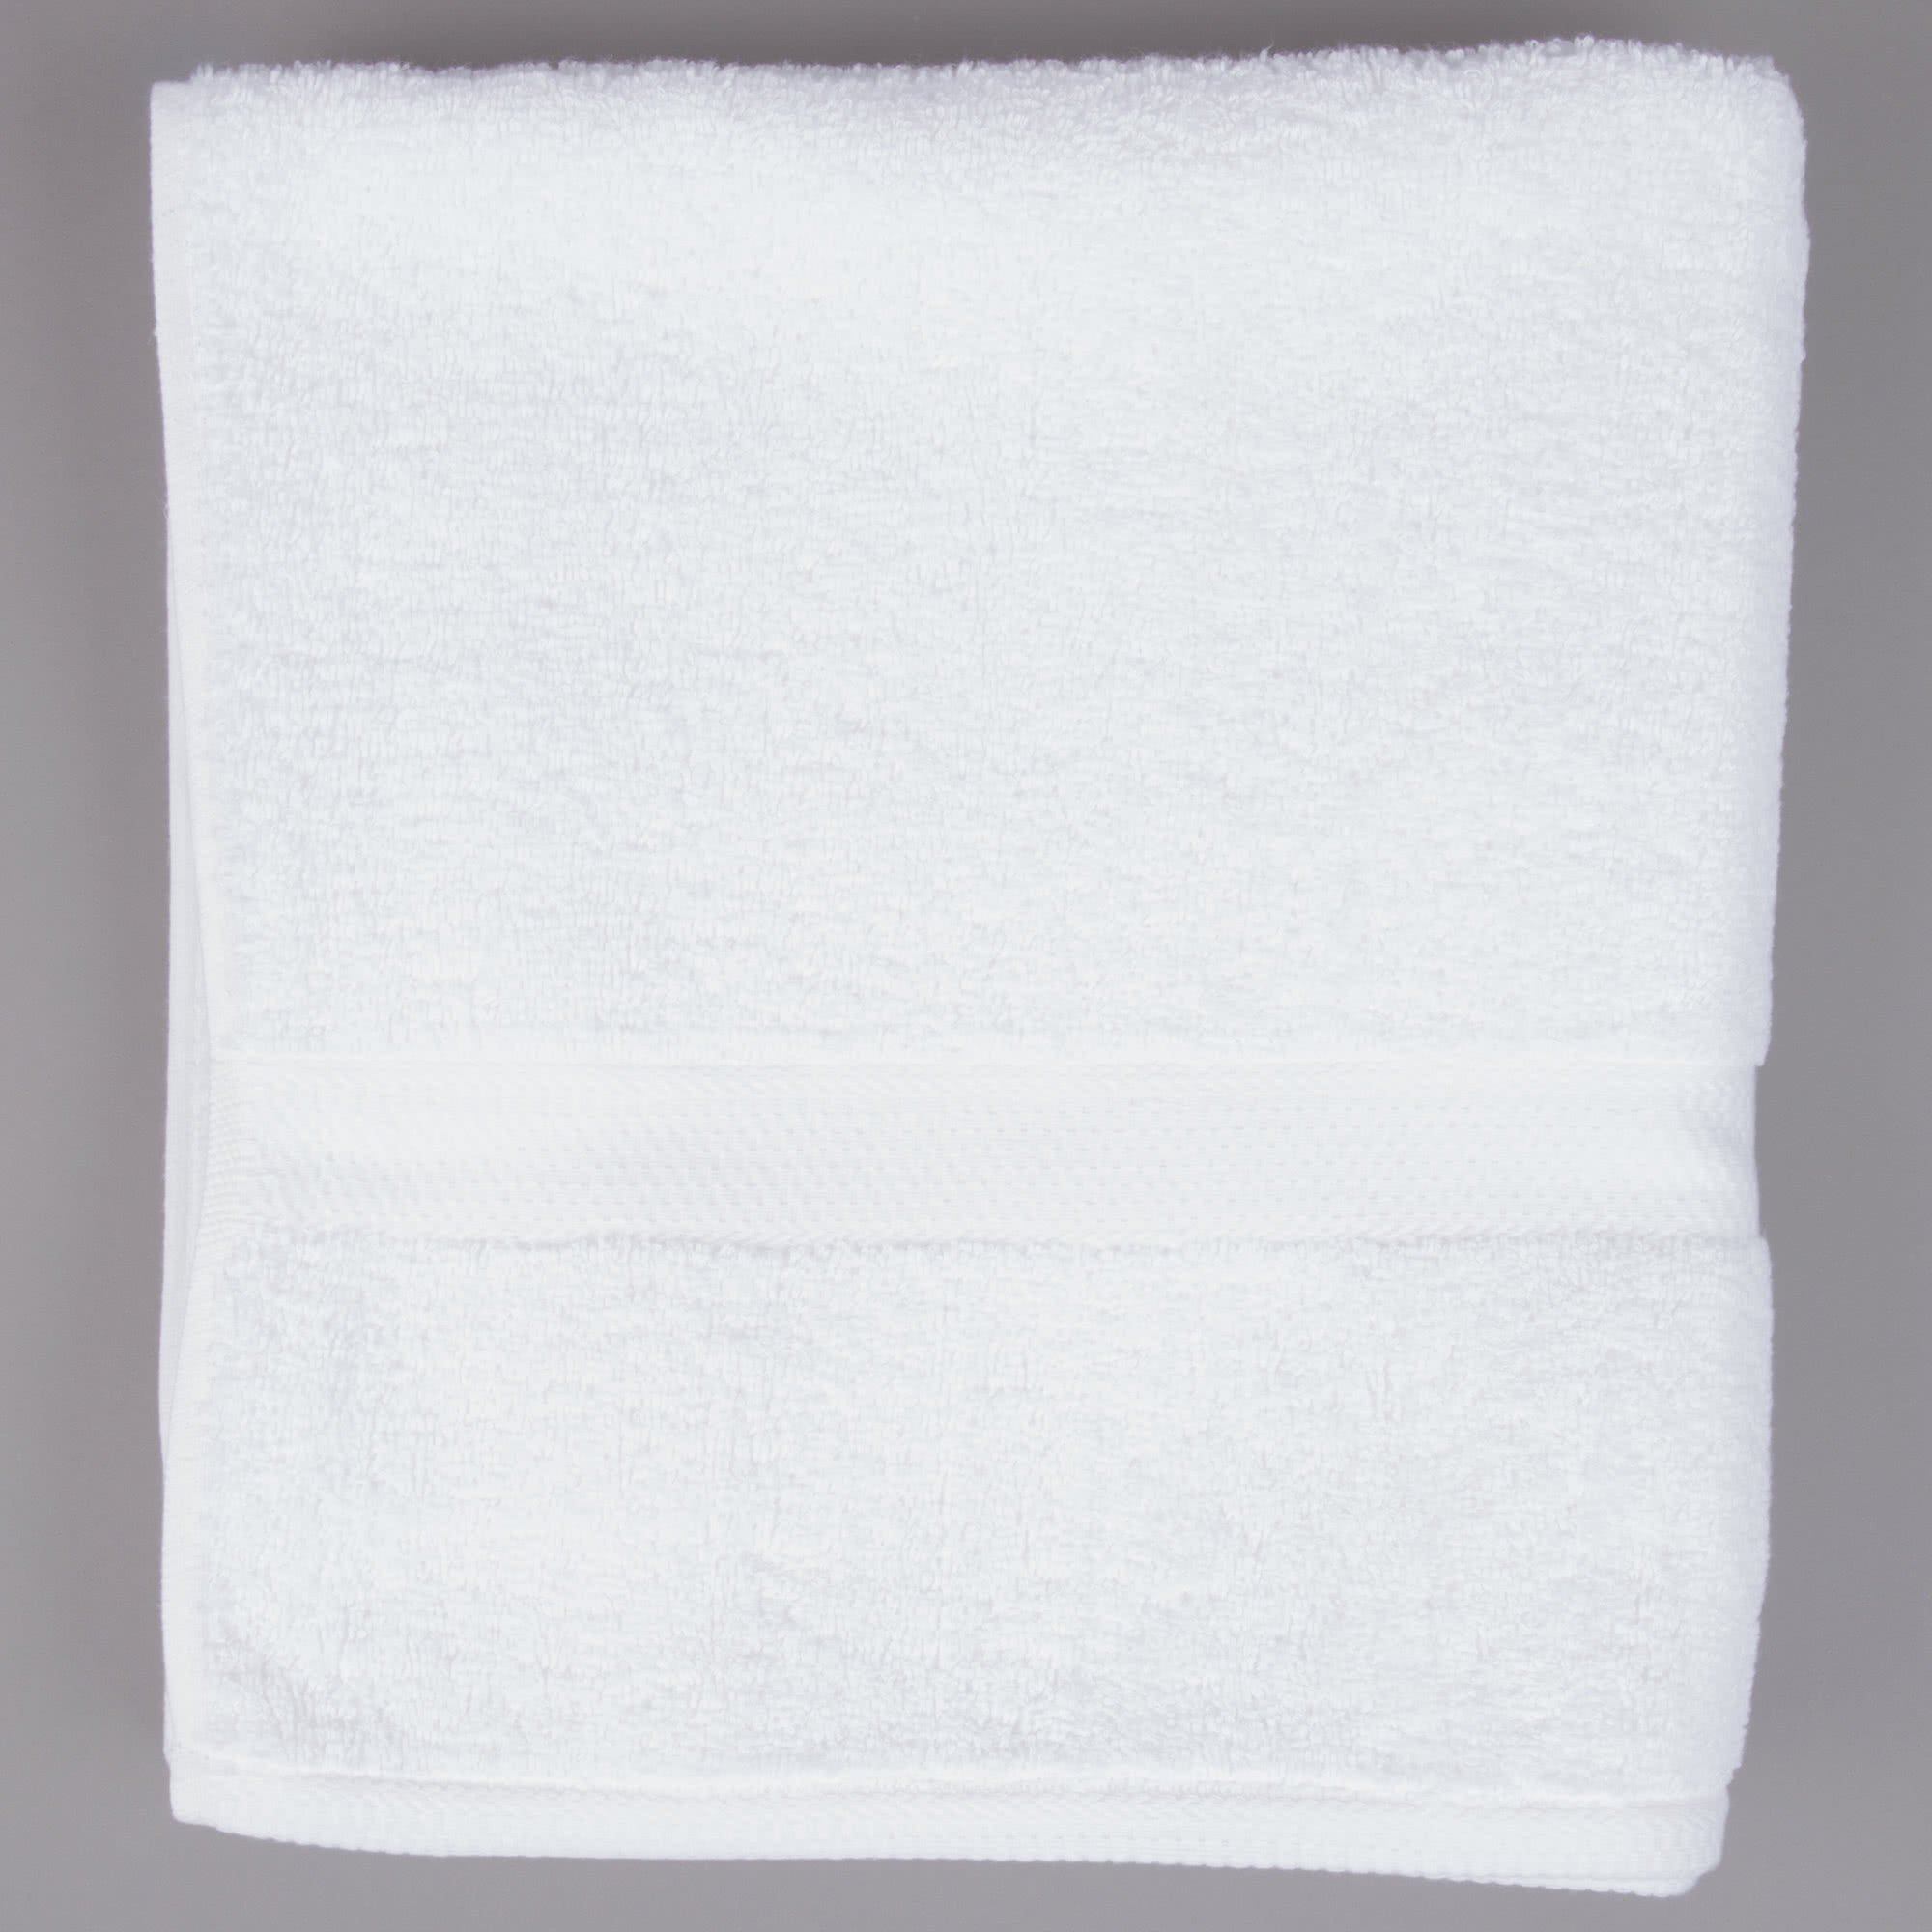 TableTop King 27'' x 54'' 100% Combed Egyptian Cotton Hotel Bath Towel 15 lb. - 12/Pack